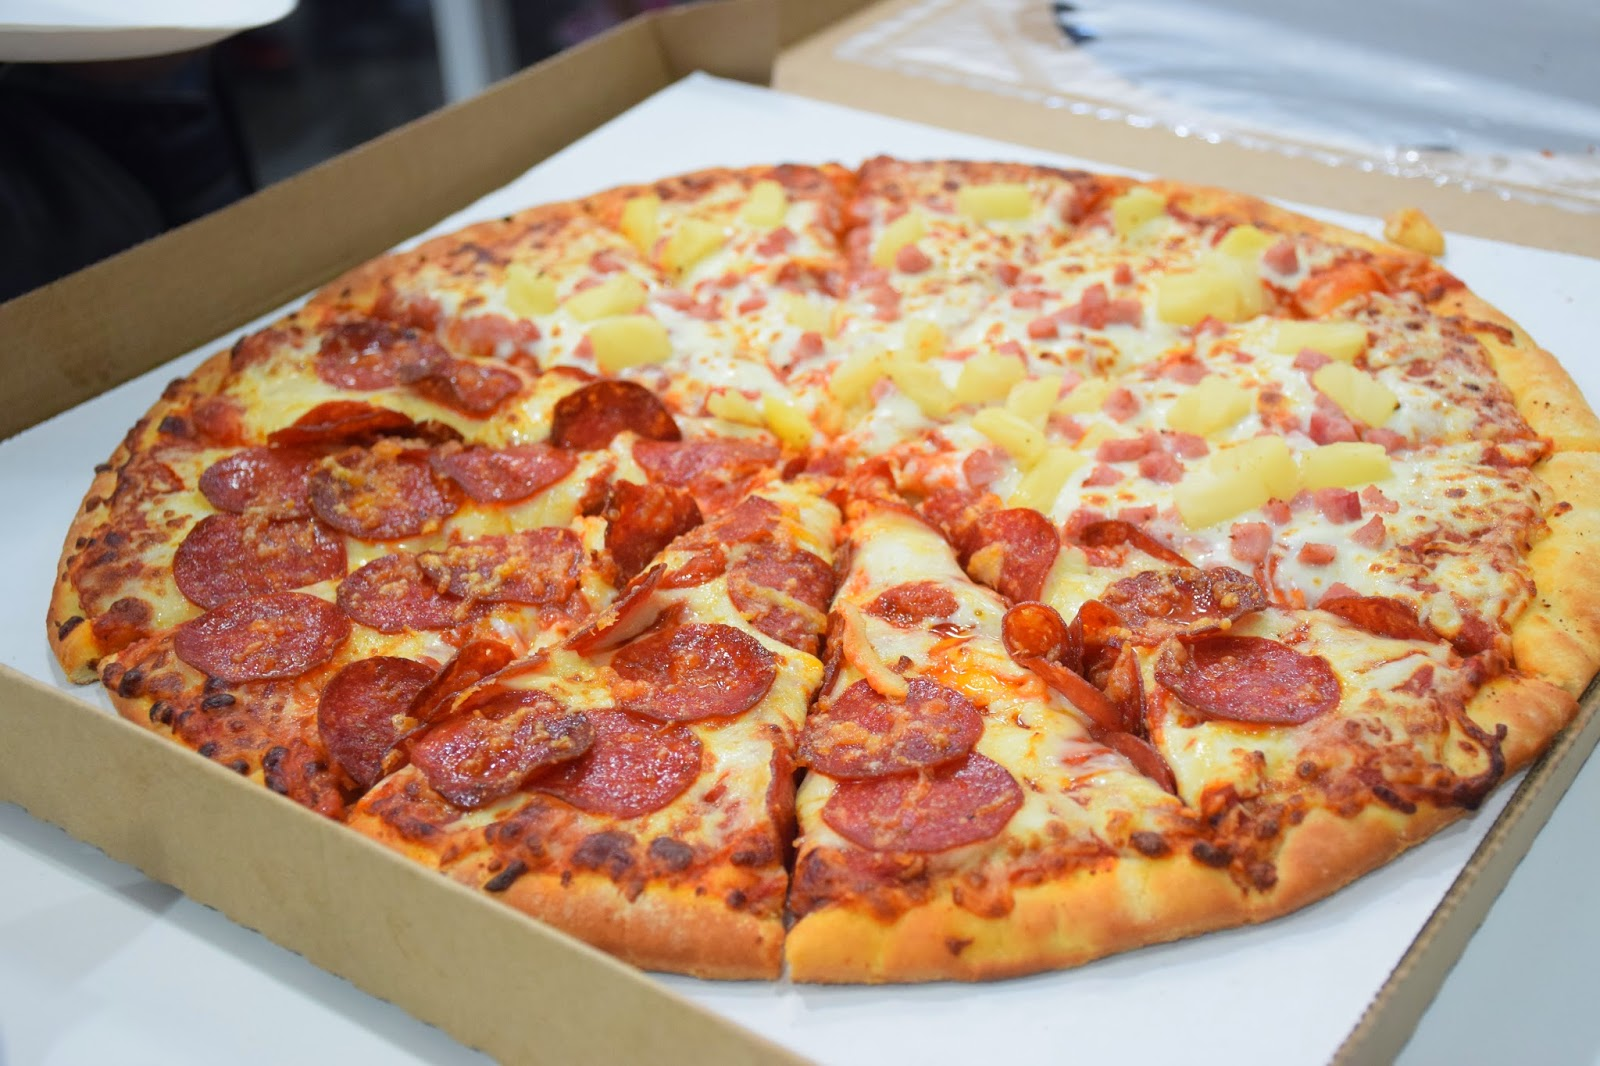 Whenever my family \u0026 I head to Costco we always order a pan pizza. For $10 you get 12 slices of pizza that\u0027s only about 83 cents a piece! & Vancity Noms: Costco - Poutine \u0026 Pizza